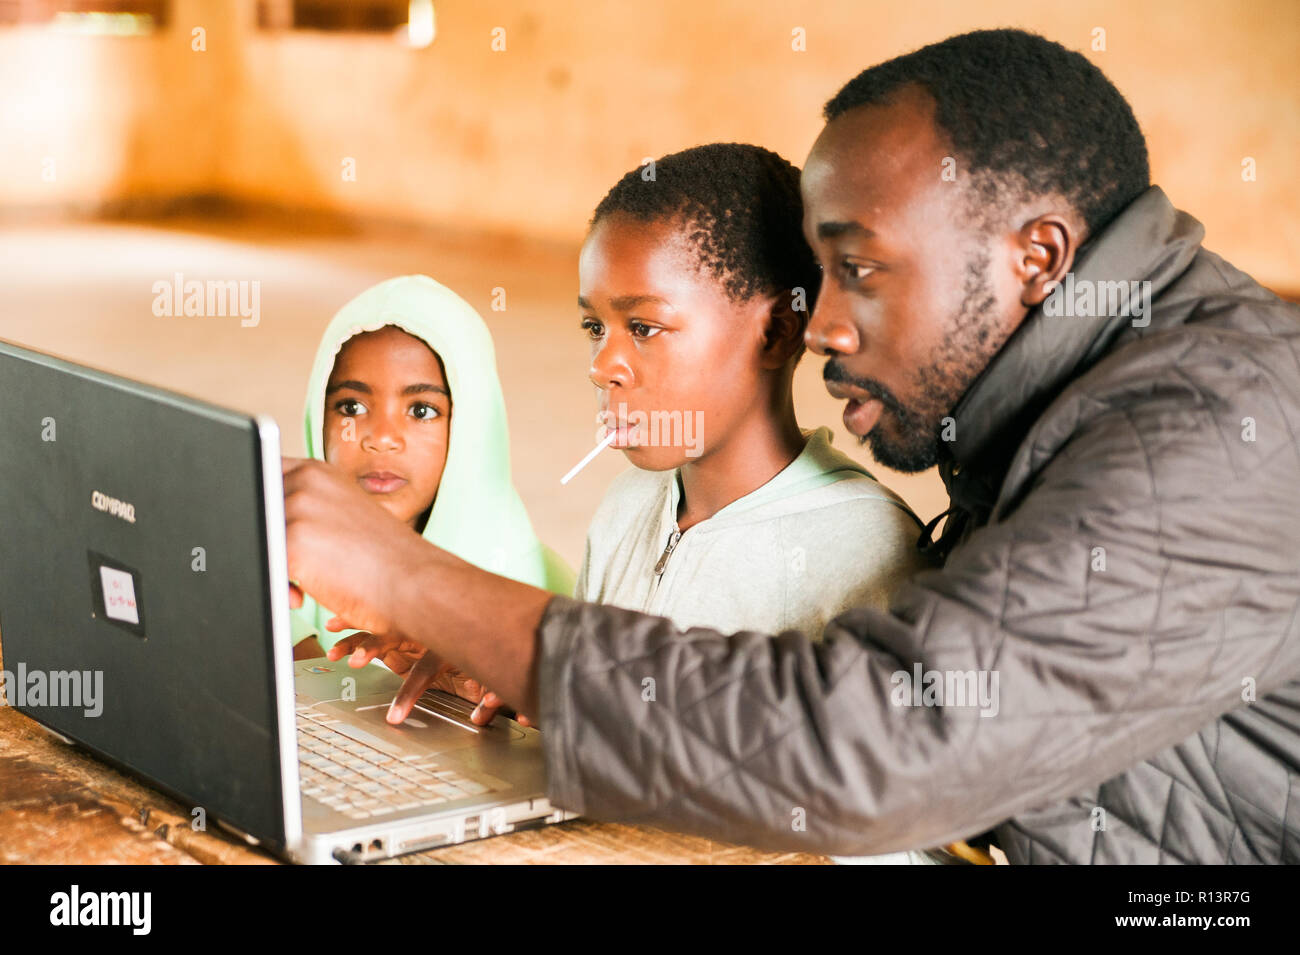 Bafoussam, Cameroon - 06 august 2018: young african children learn to use computer with young teacher touching screen Stock Photo